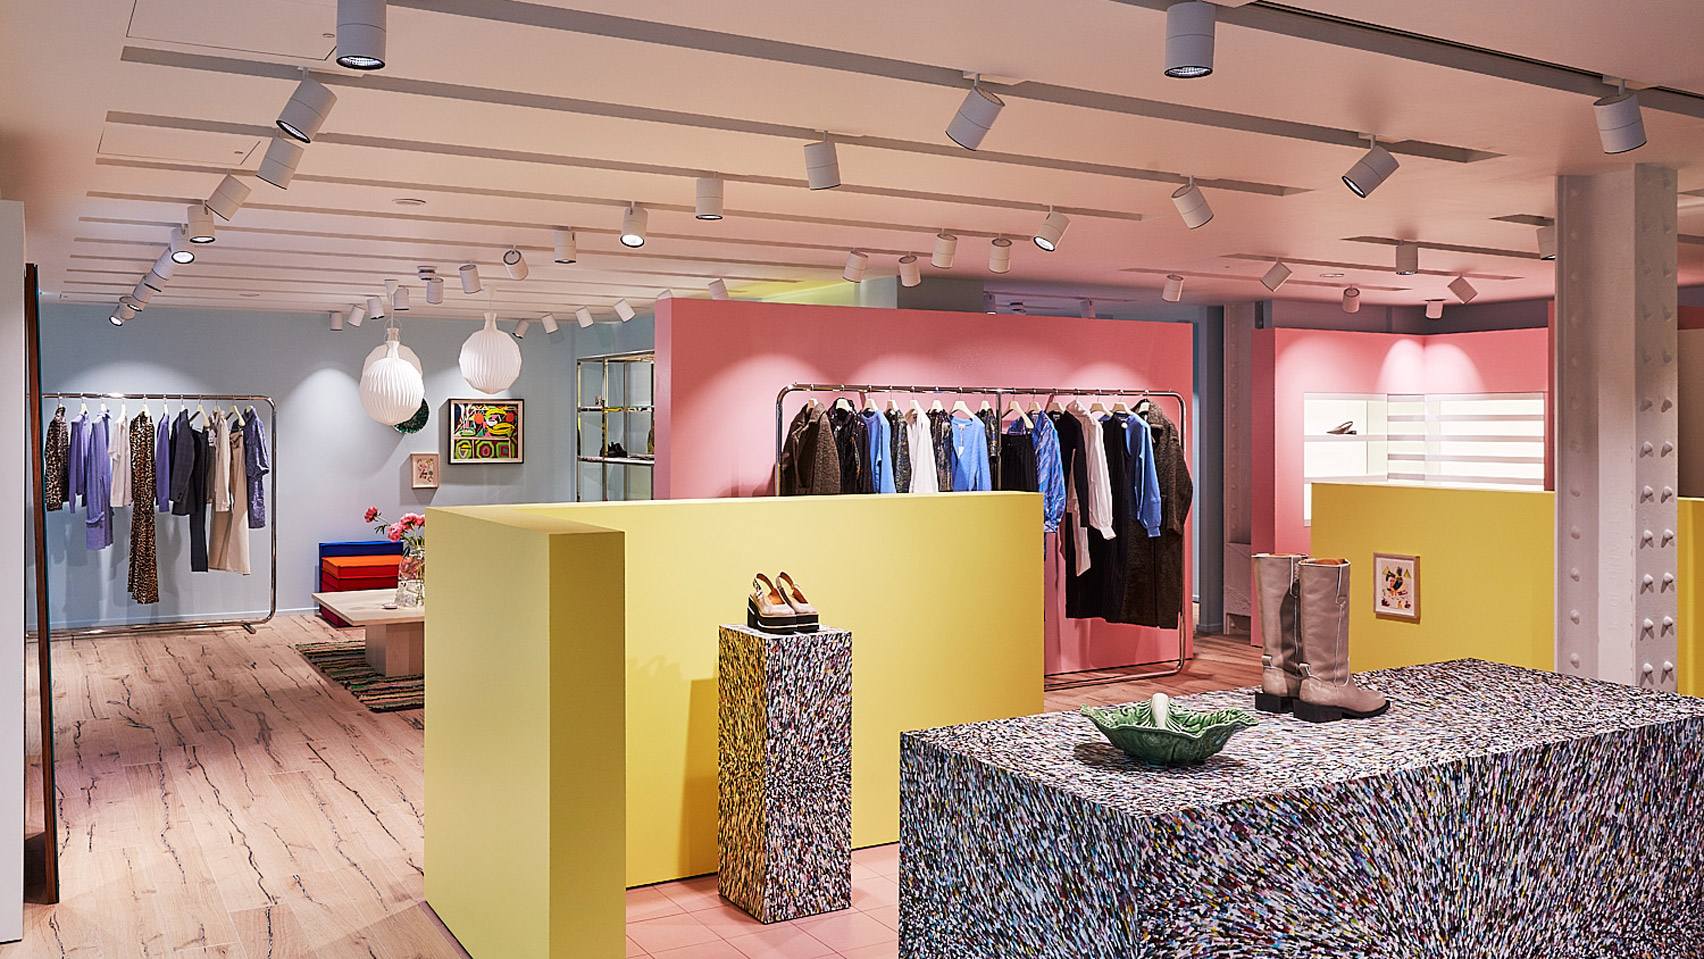 Ganni Beak Street Is First Uk Flagship And Resembles A Danish Home